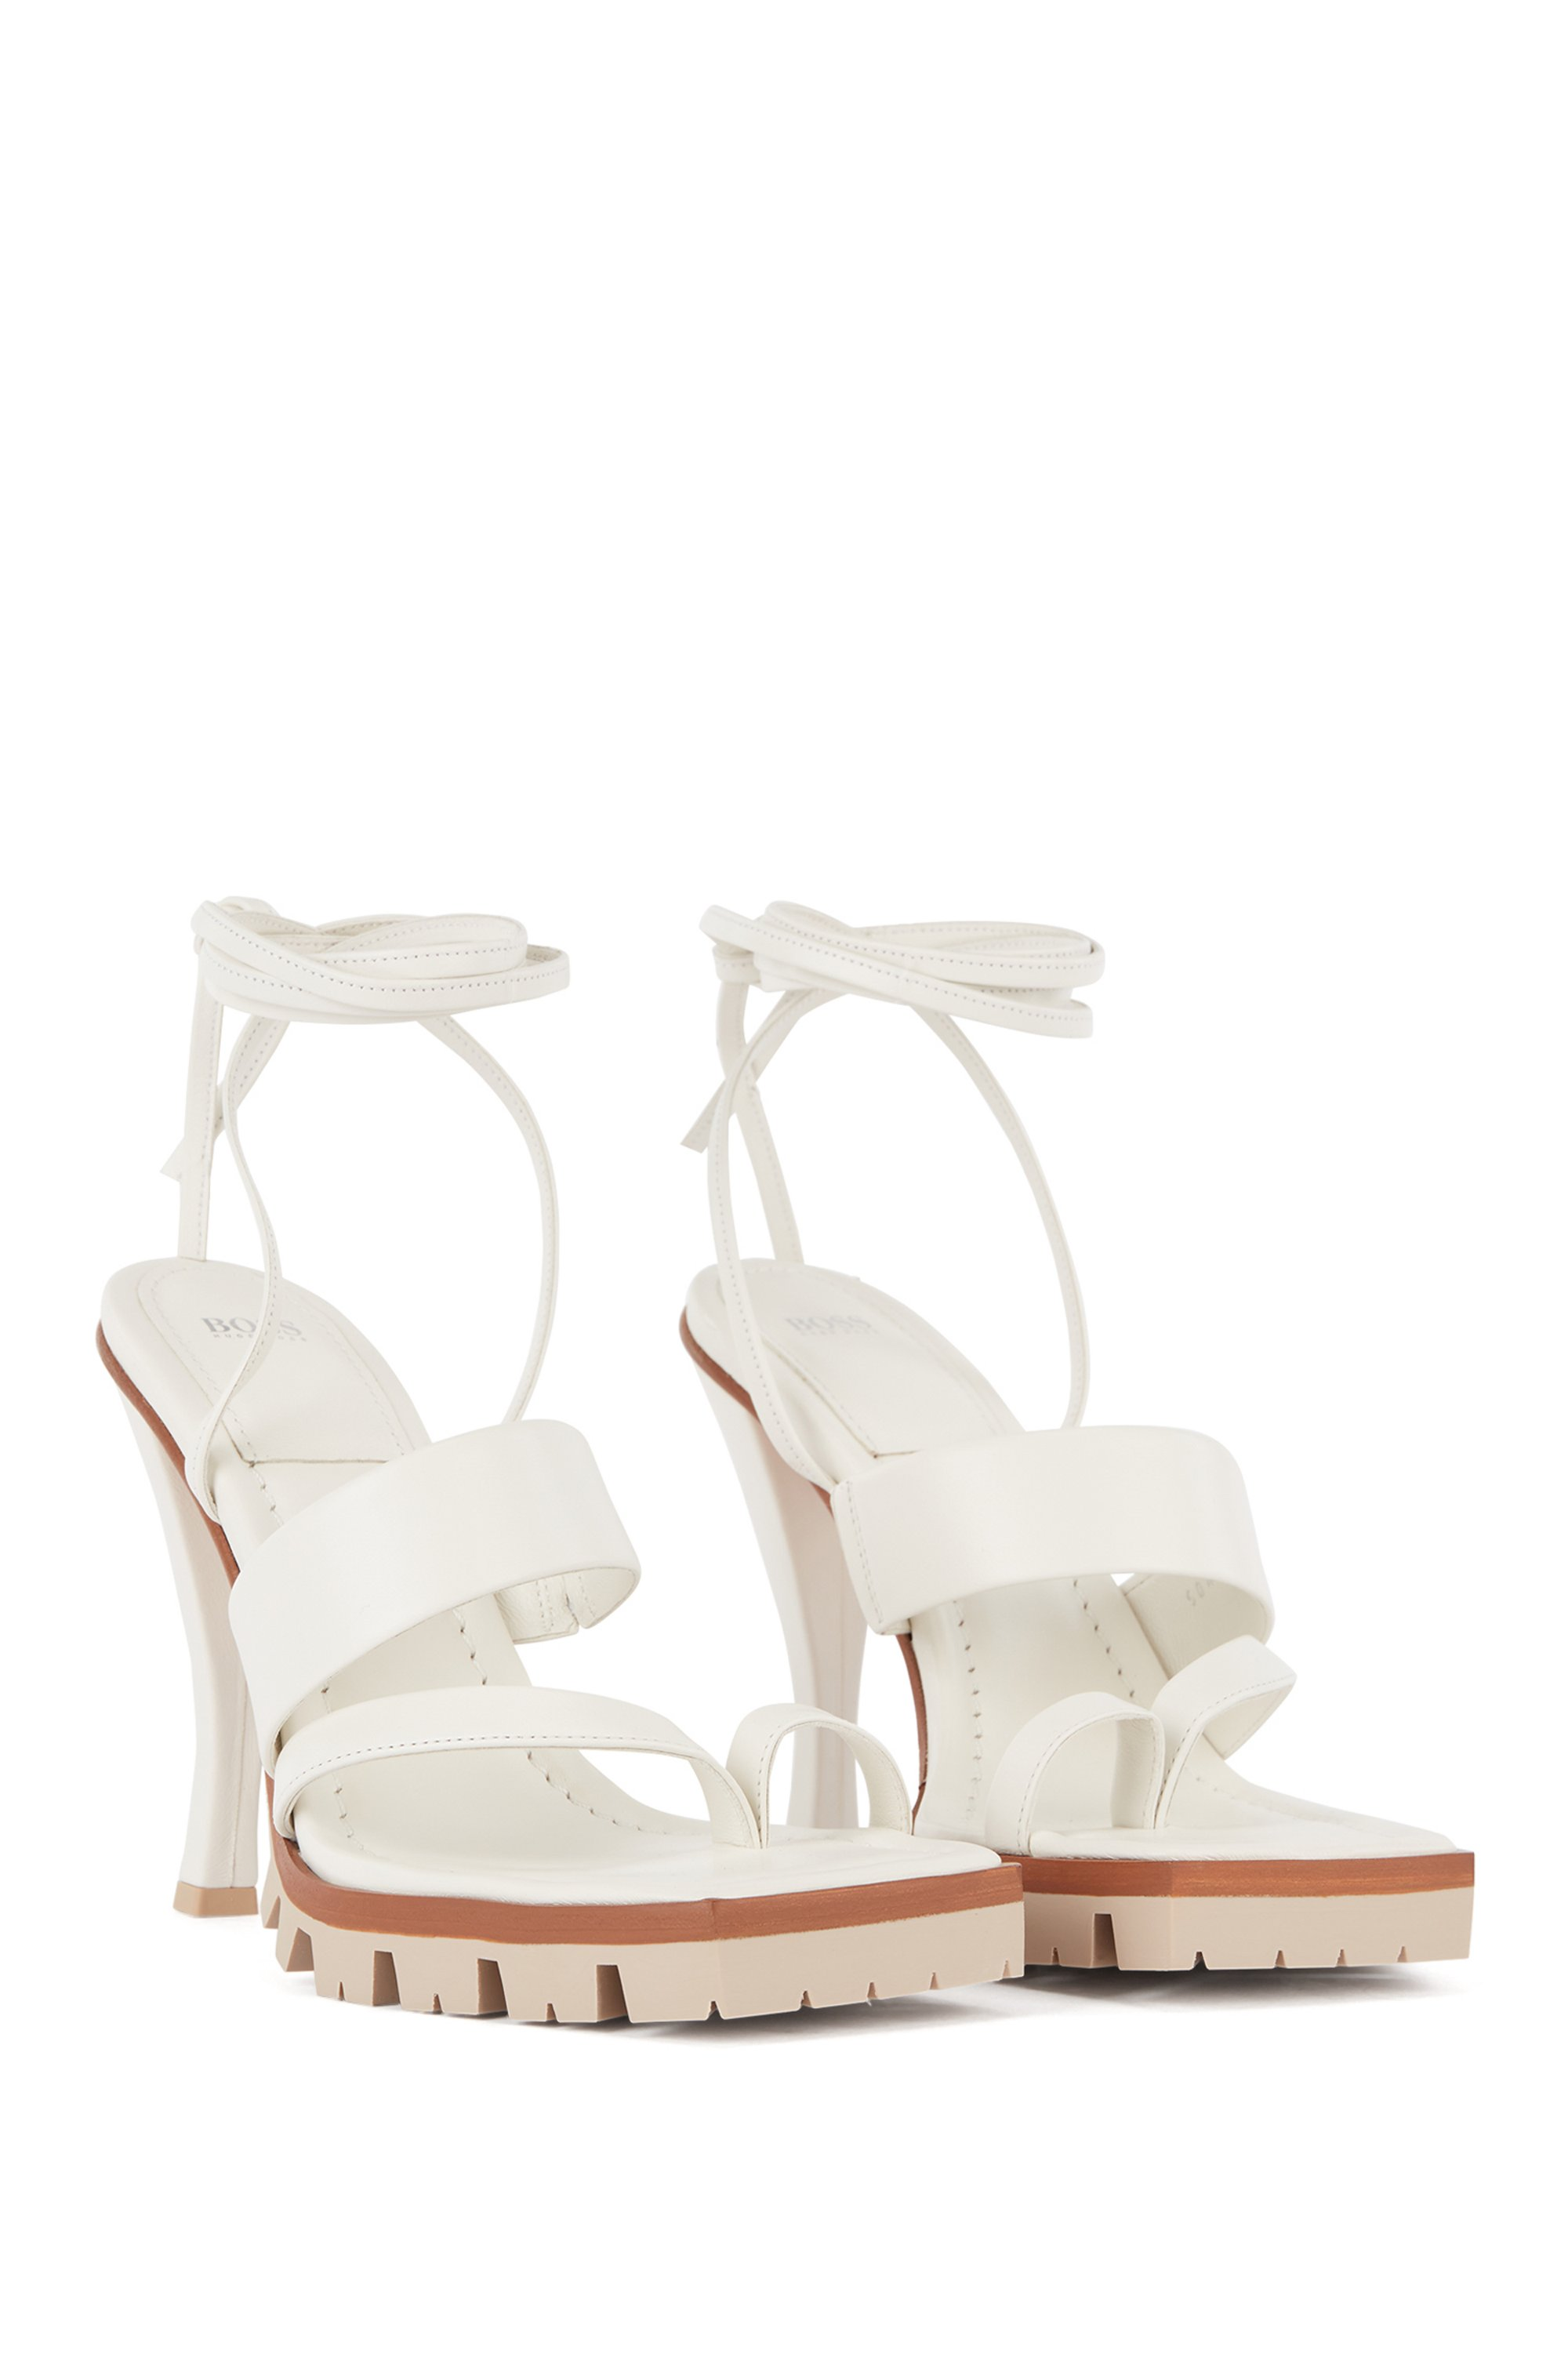 High-heeled sandals in nappa leather with ankle ties